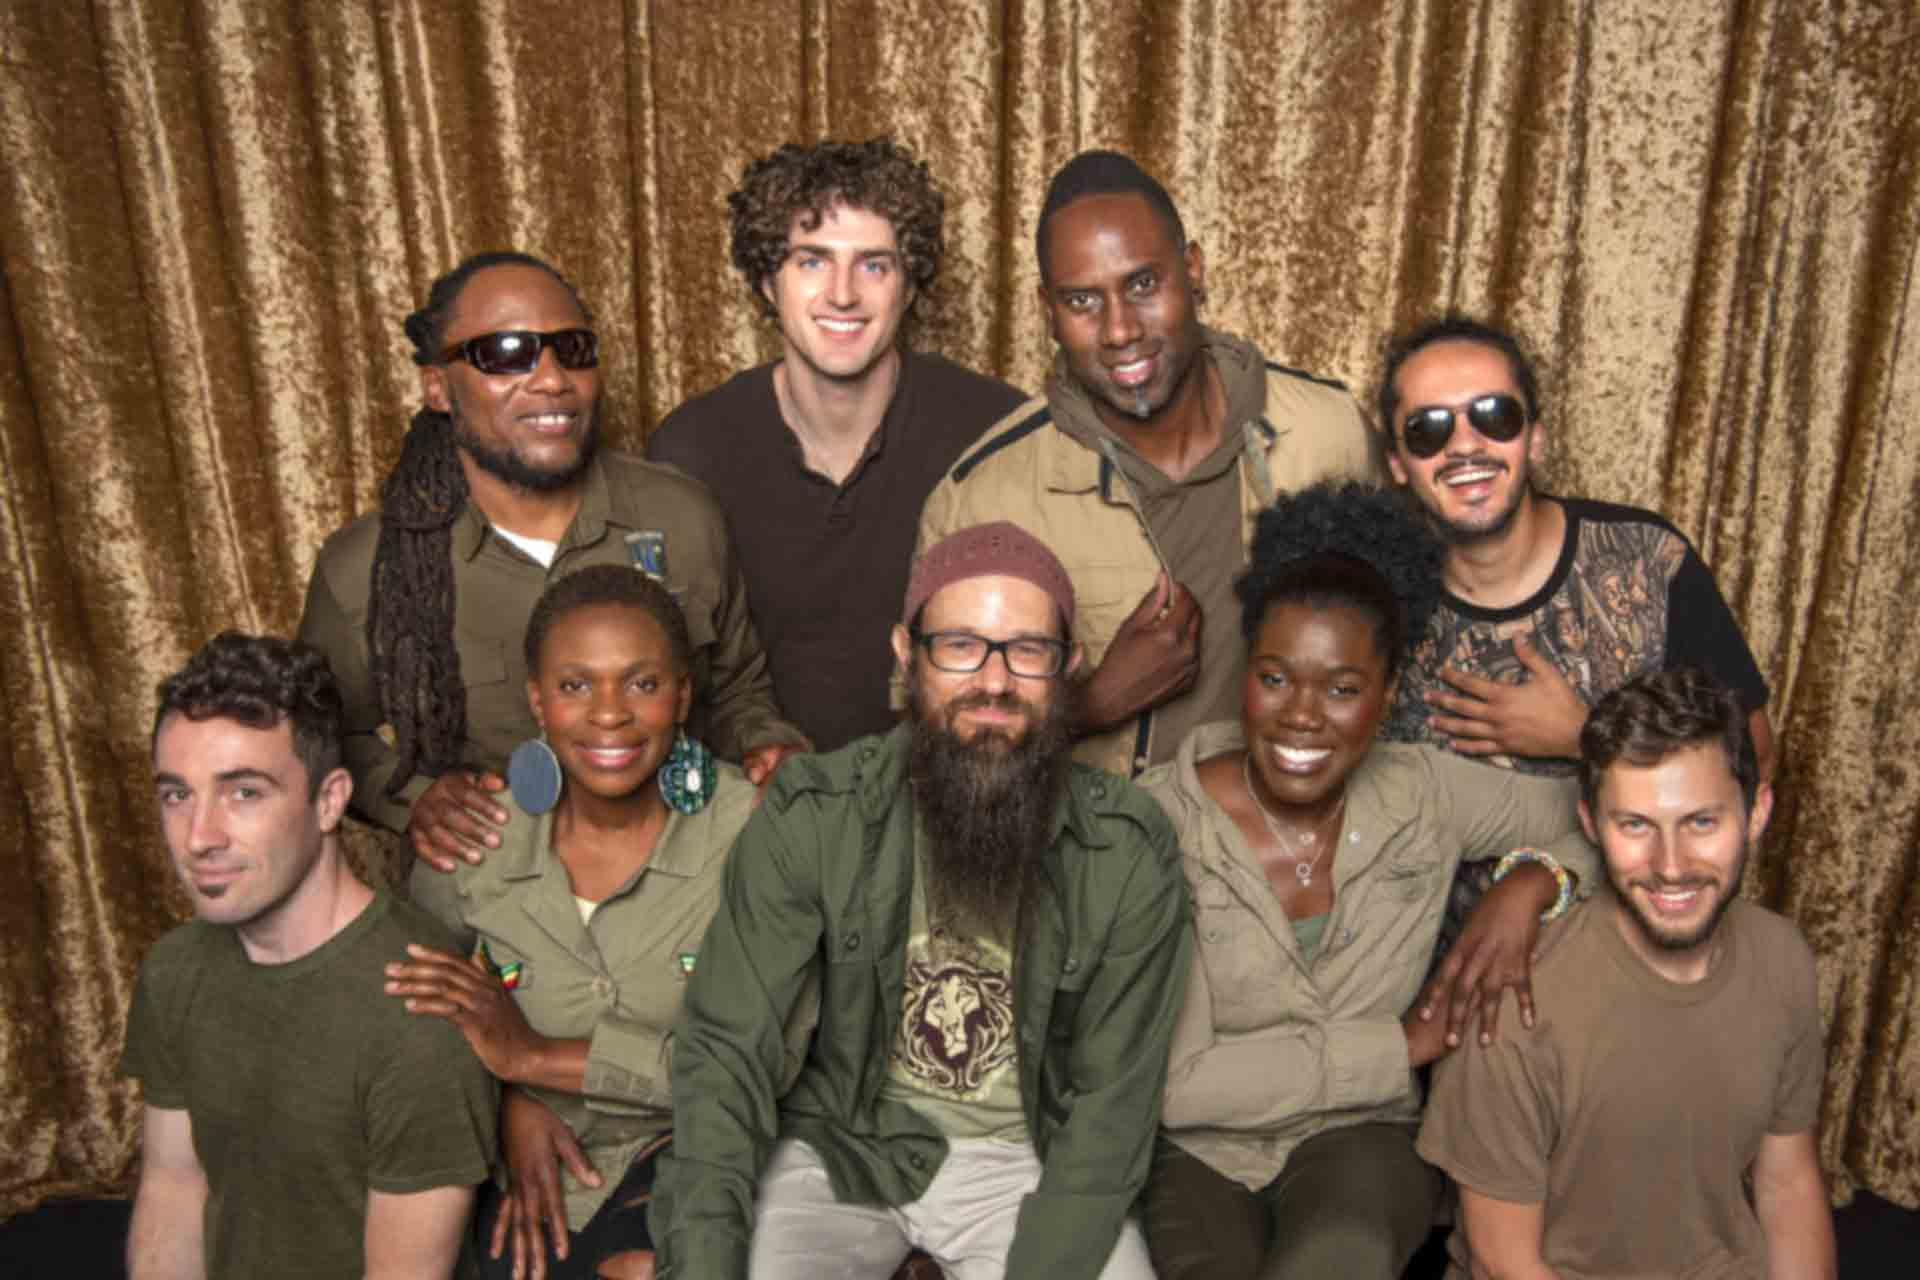 https://the-place-to-be.fr/wp-content/uploads/2020/06/GROUNDATION-concert-cenon-rocher-palmer-bordeaux-novembre-2020.jpg